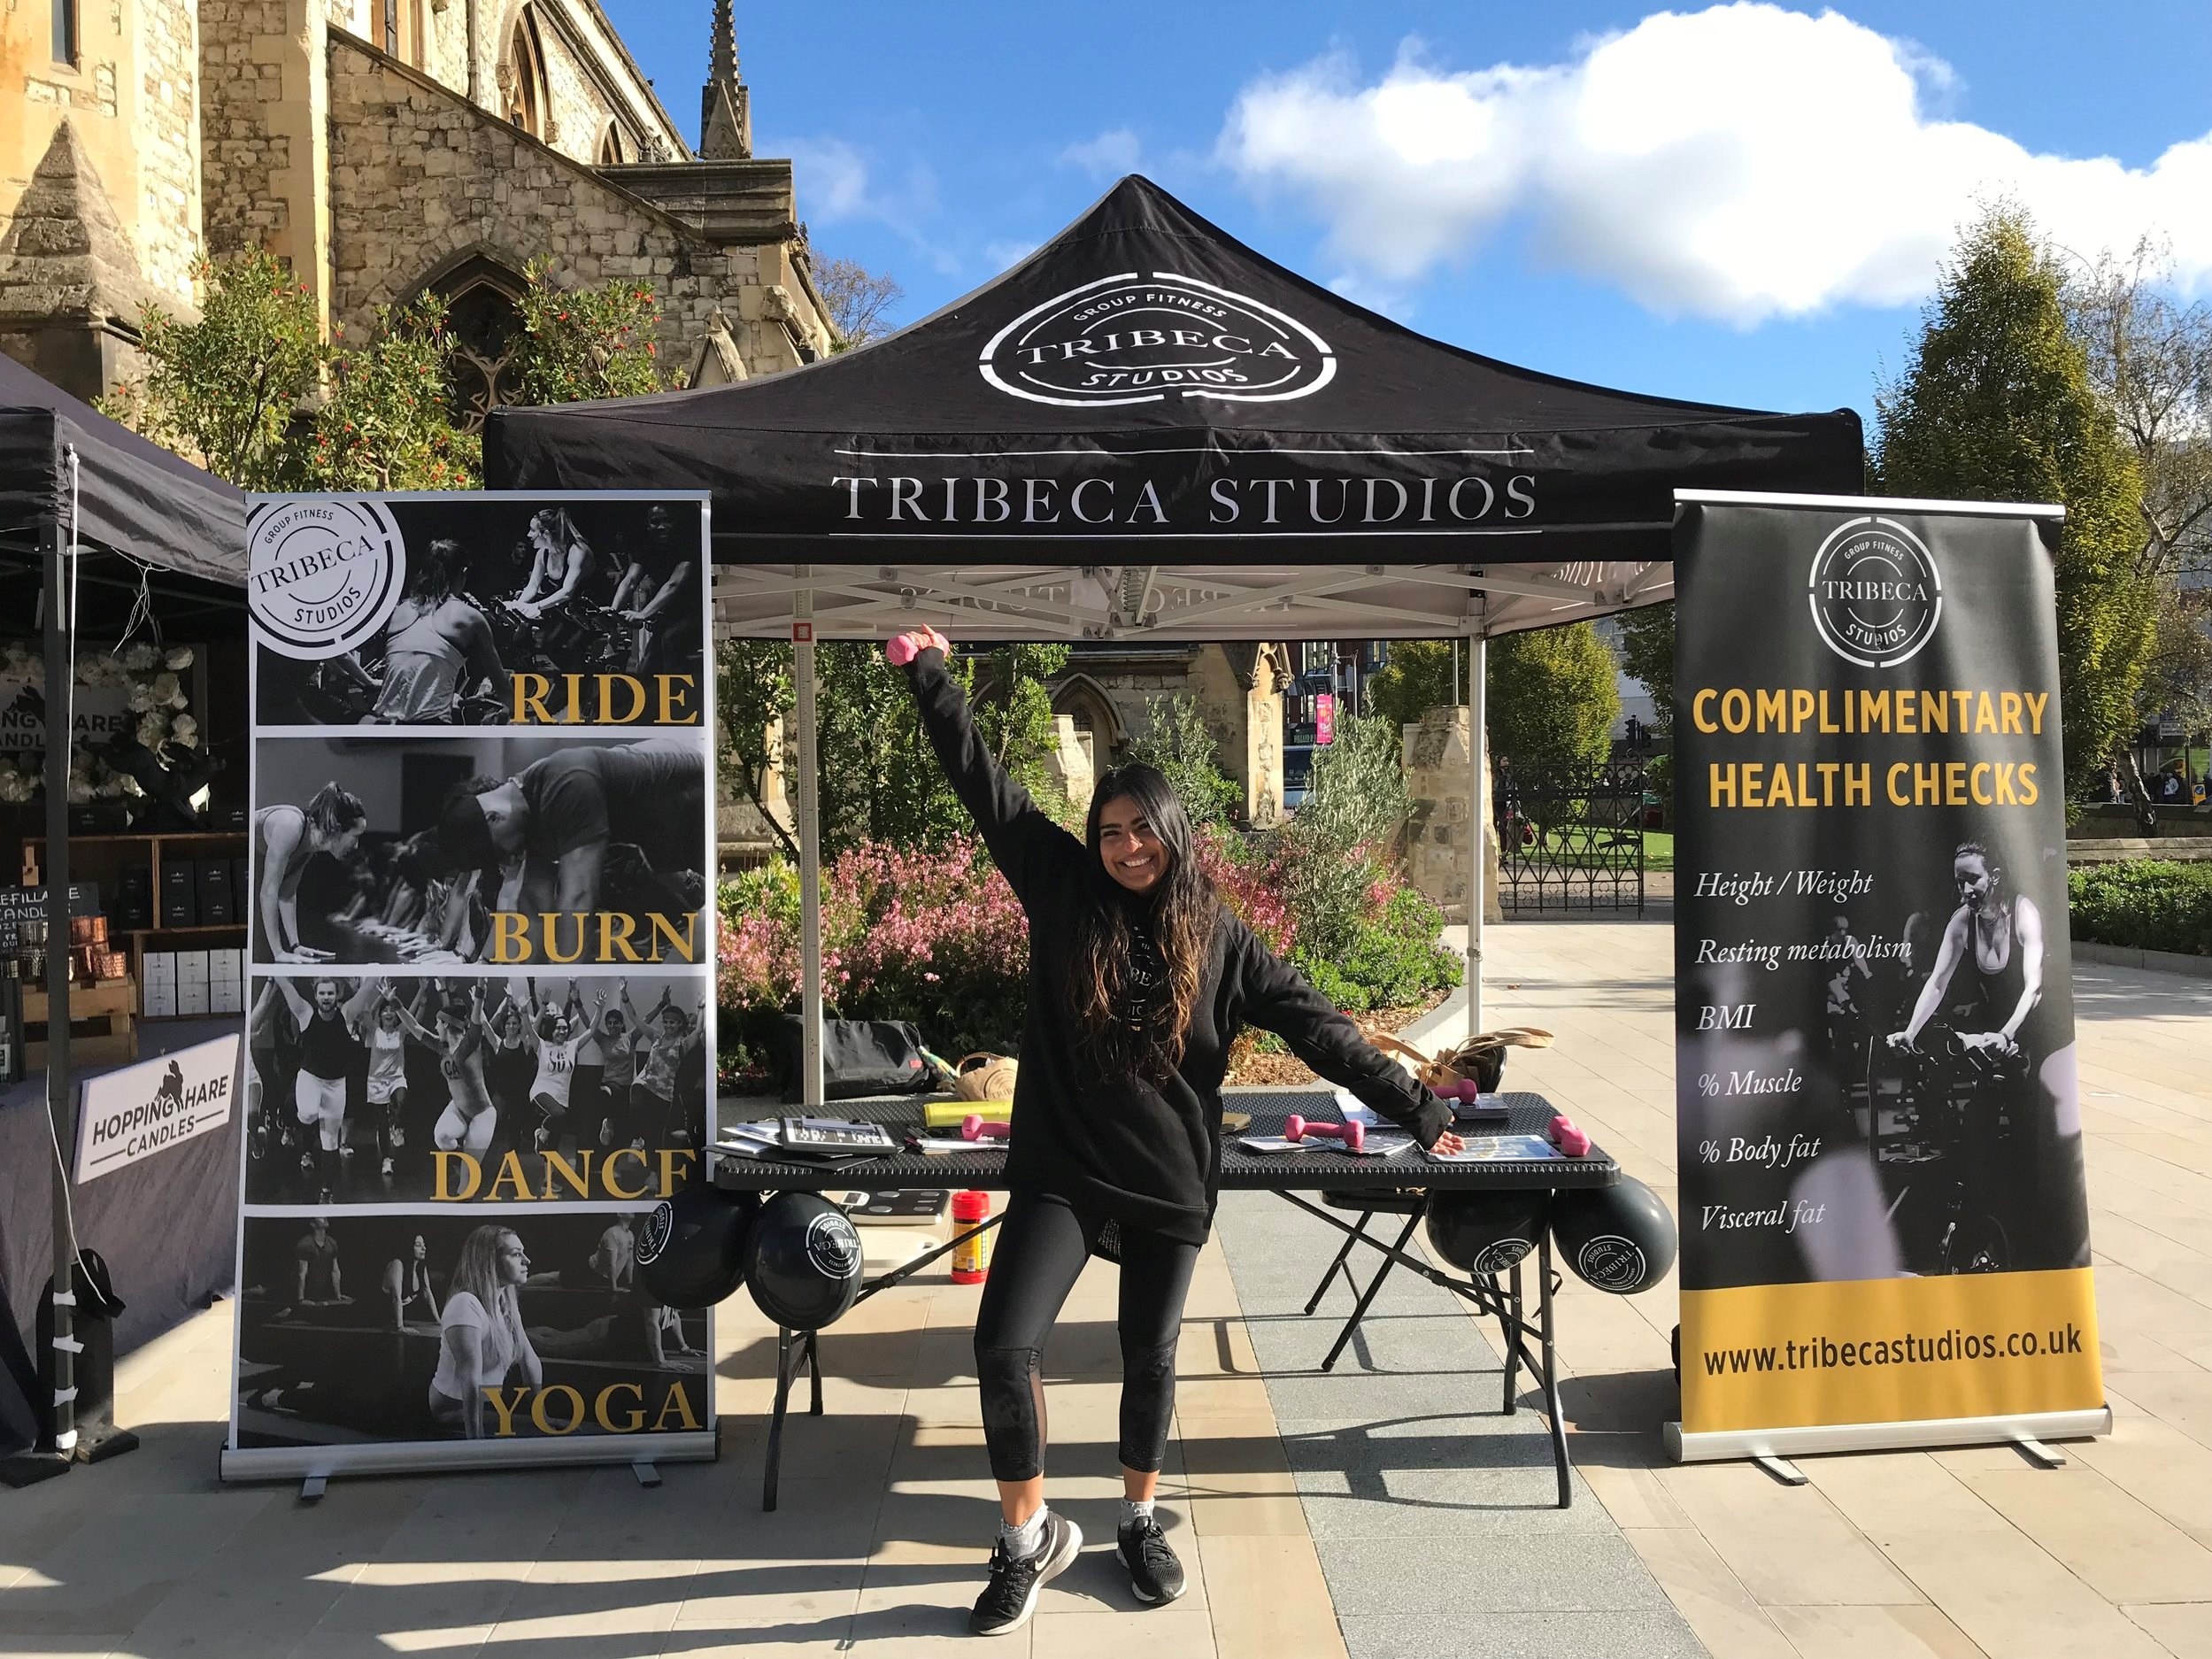 - Tribeca Studios15th DecemberFitness studio based in Ealing. Why give the gift of fitness?! Talk to the team to learn more on their wide range of classes.